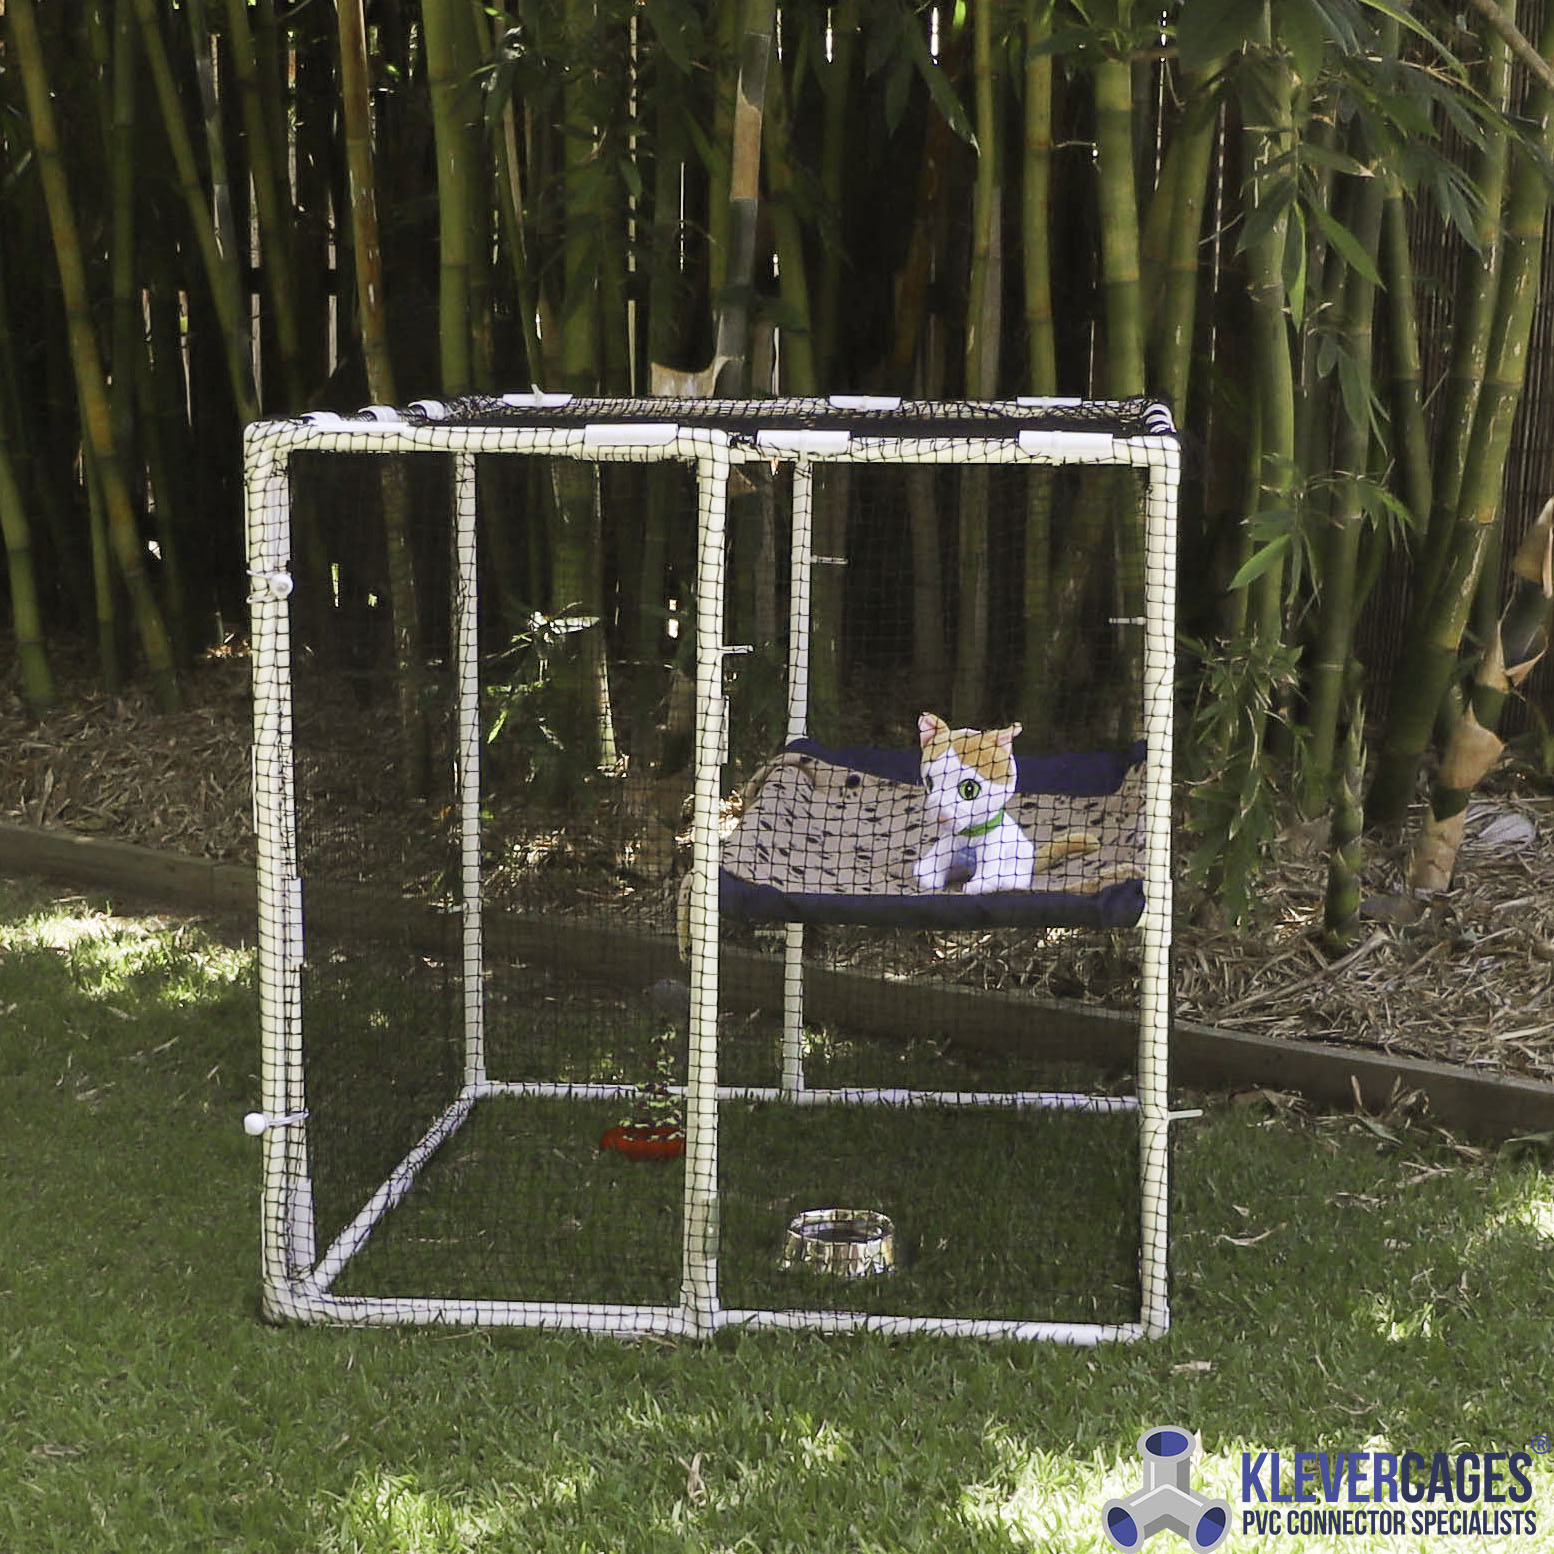 Small cat enclosure catio built with PVC pipes and Klever Connectors from Klever Cages Australia. This cat enclosure is outside on the grass infront of bamboo